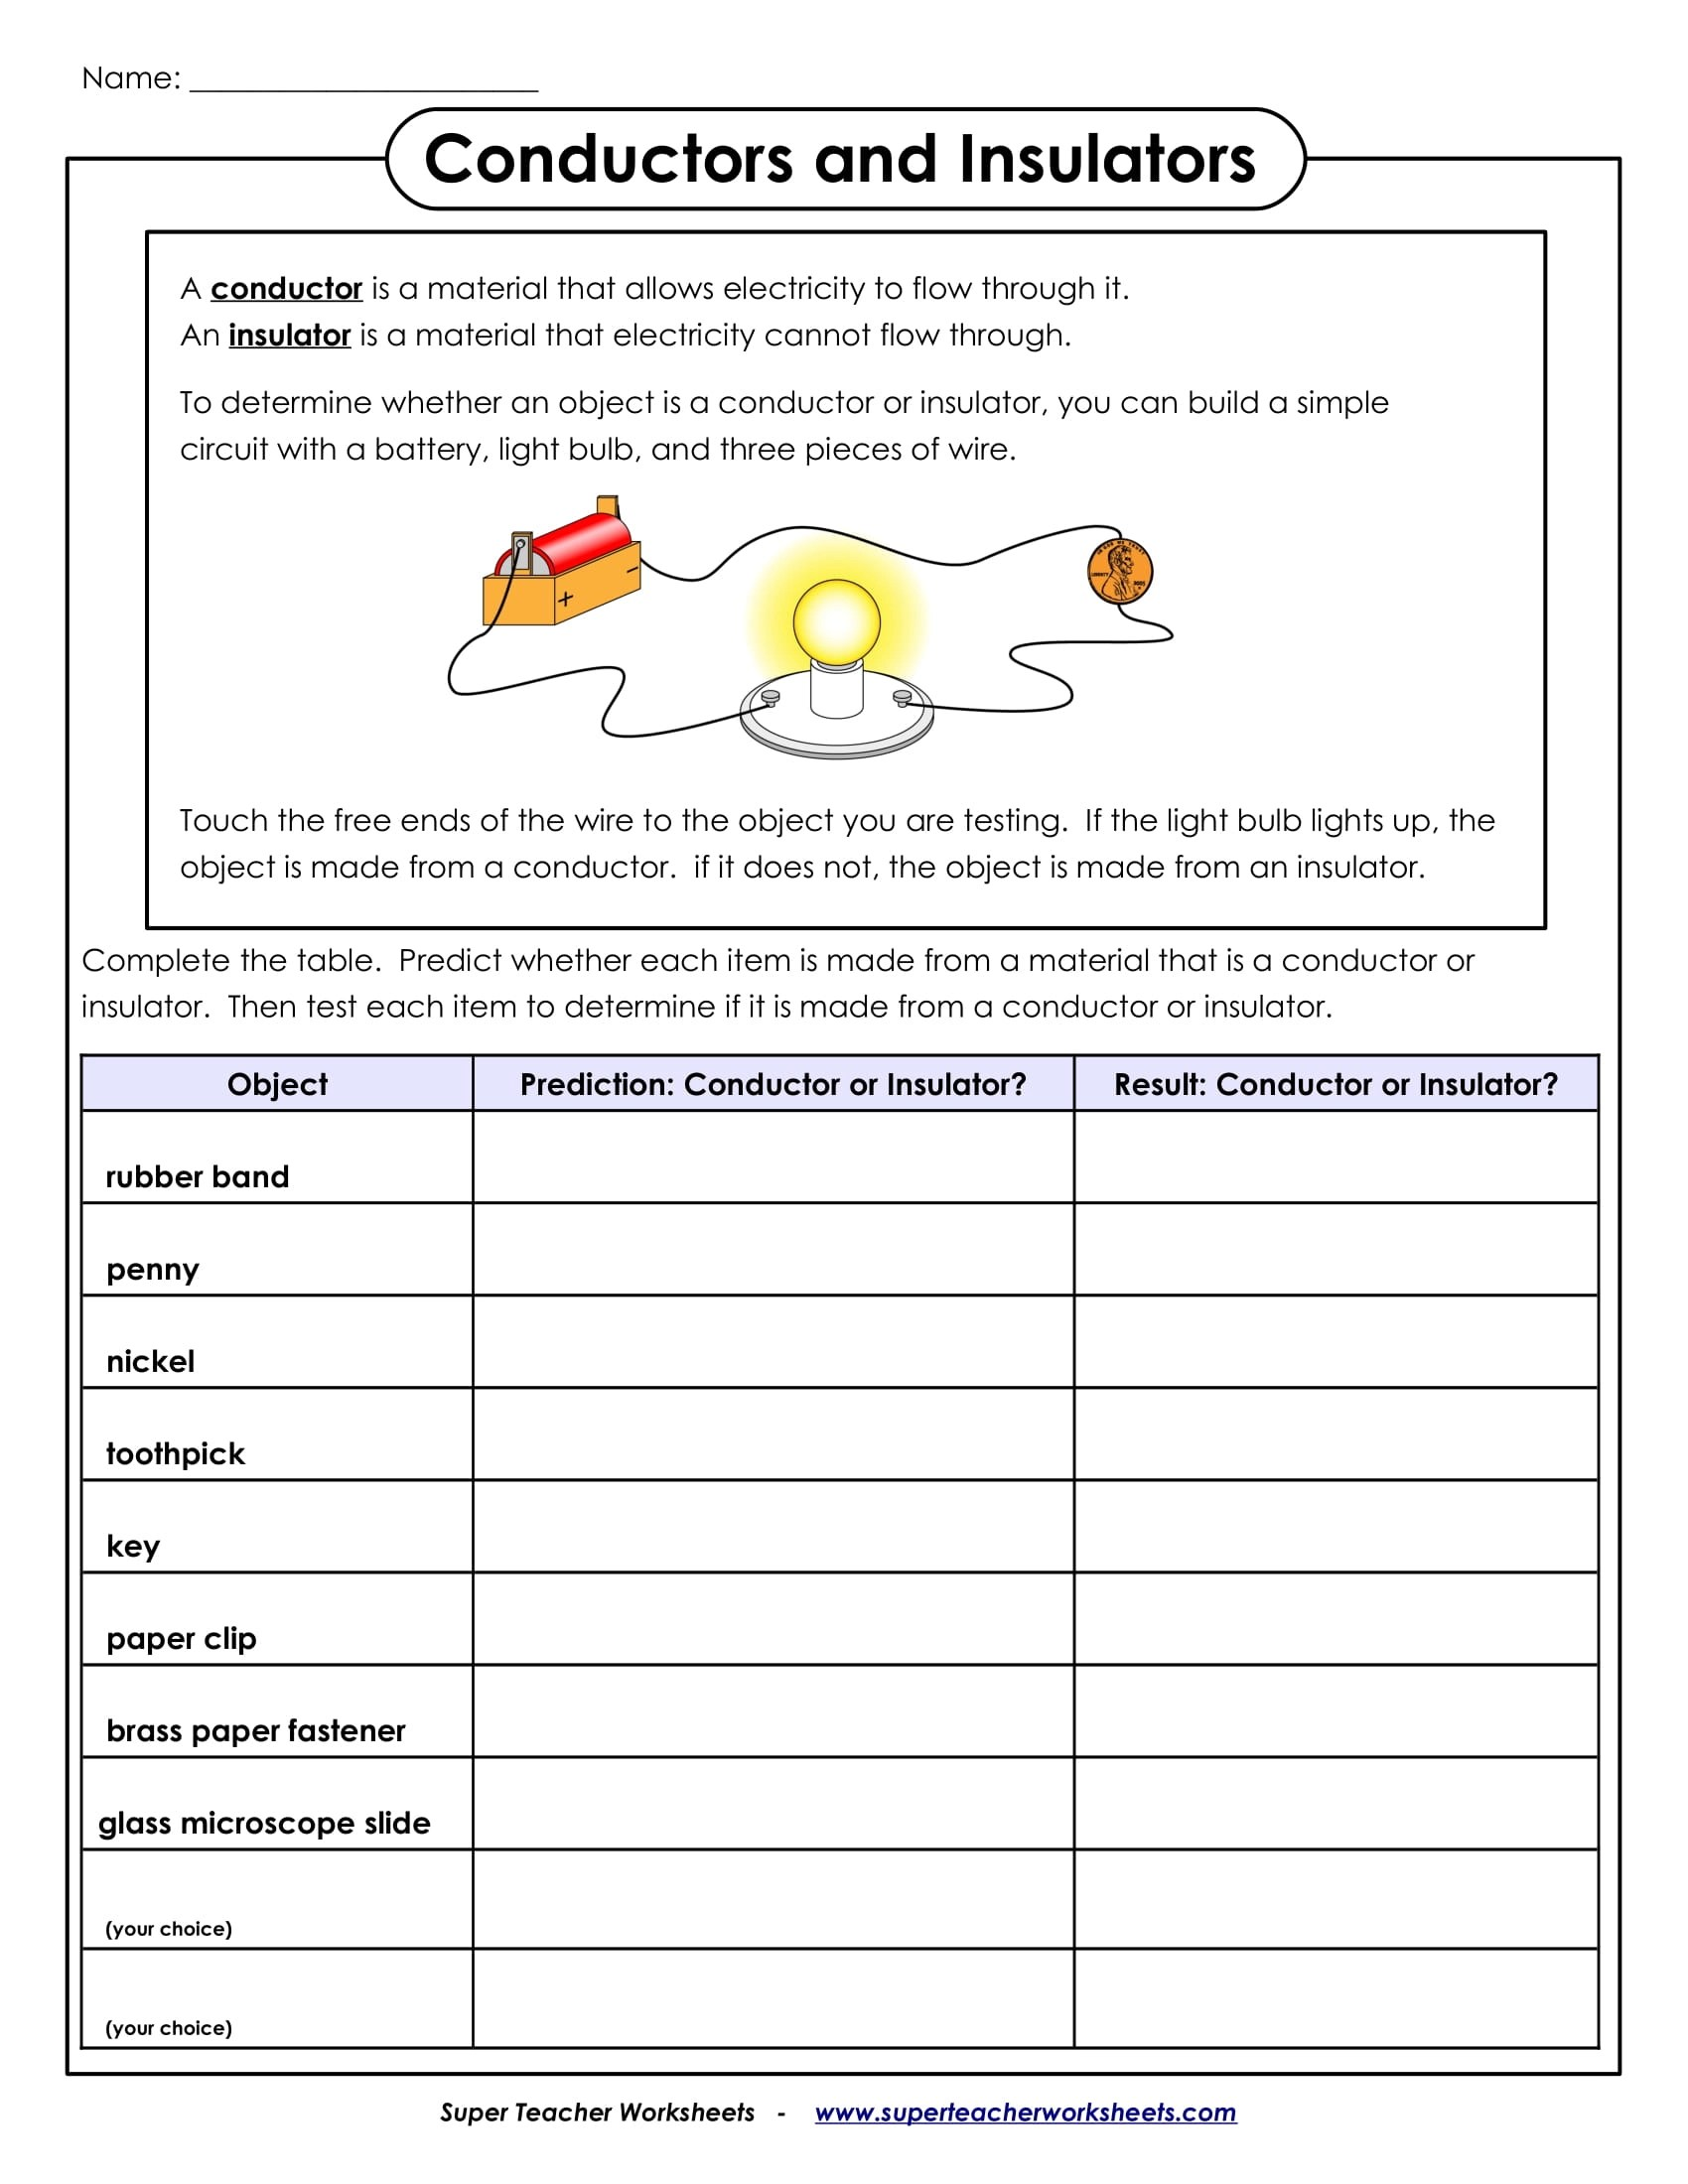 Sample Check Worksheet